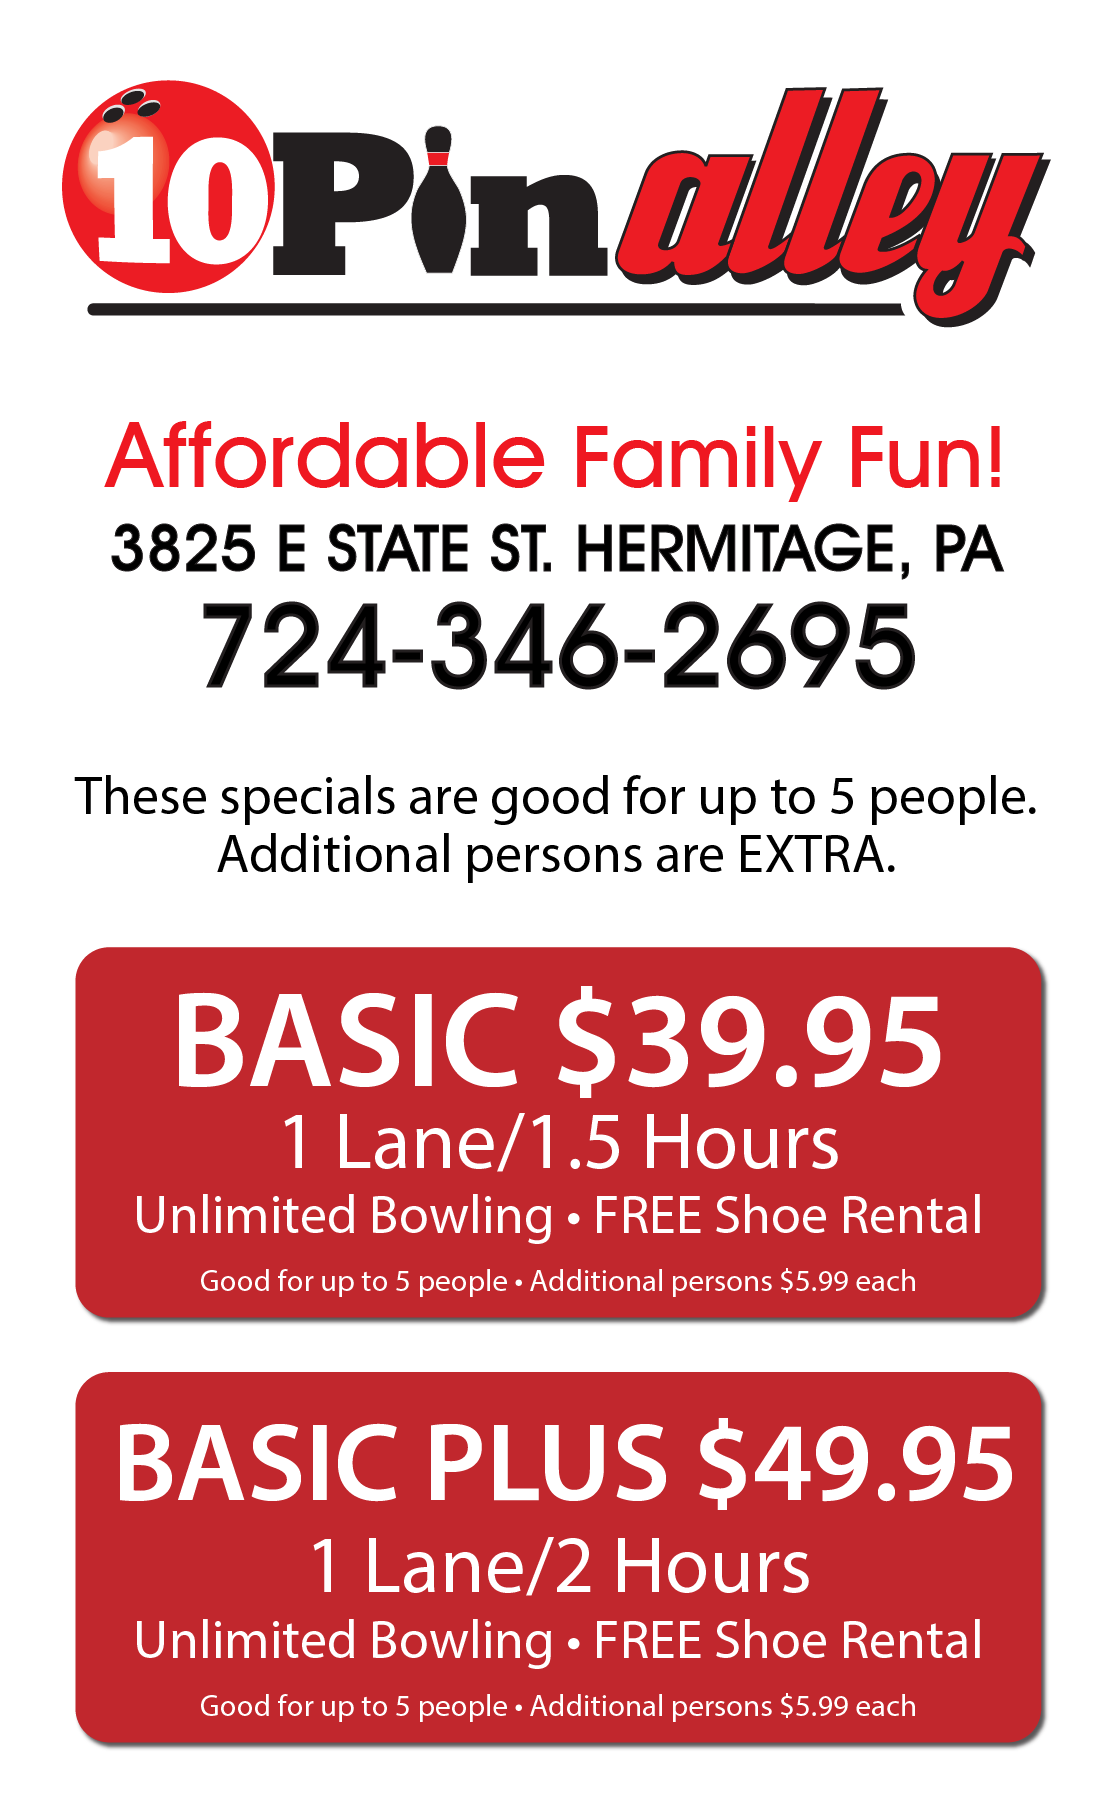 Family bowling specials in Sharon & Hermitage PA